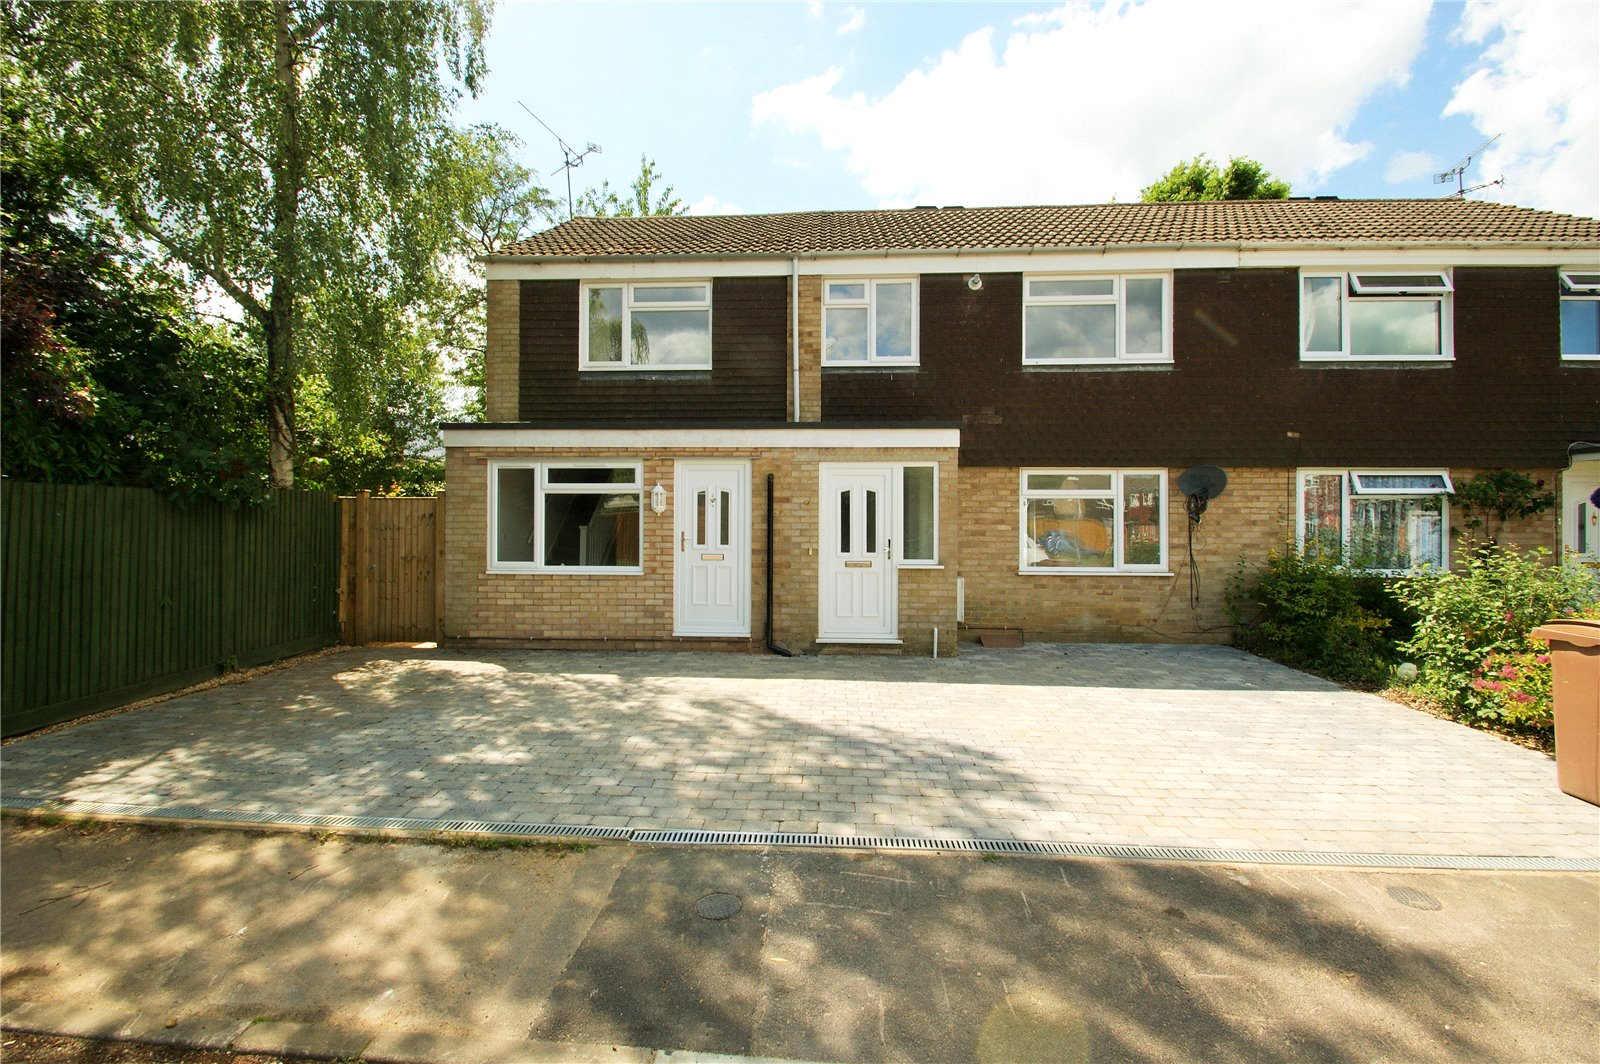 2 Bedrooms Terraced House for sale in Hutsons Close, Wokingham, Berkshire, RG40